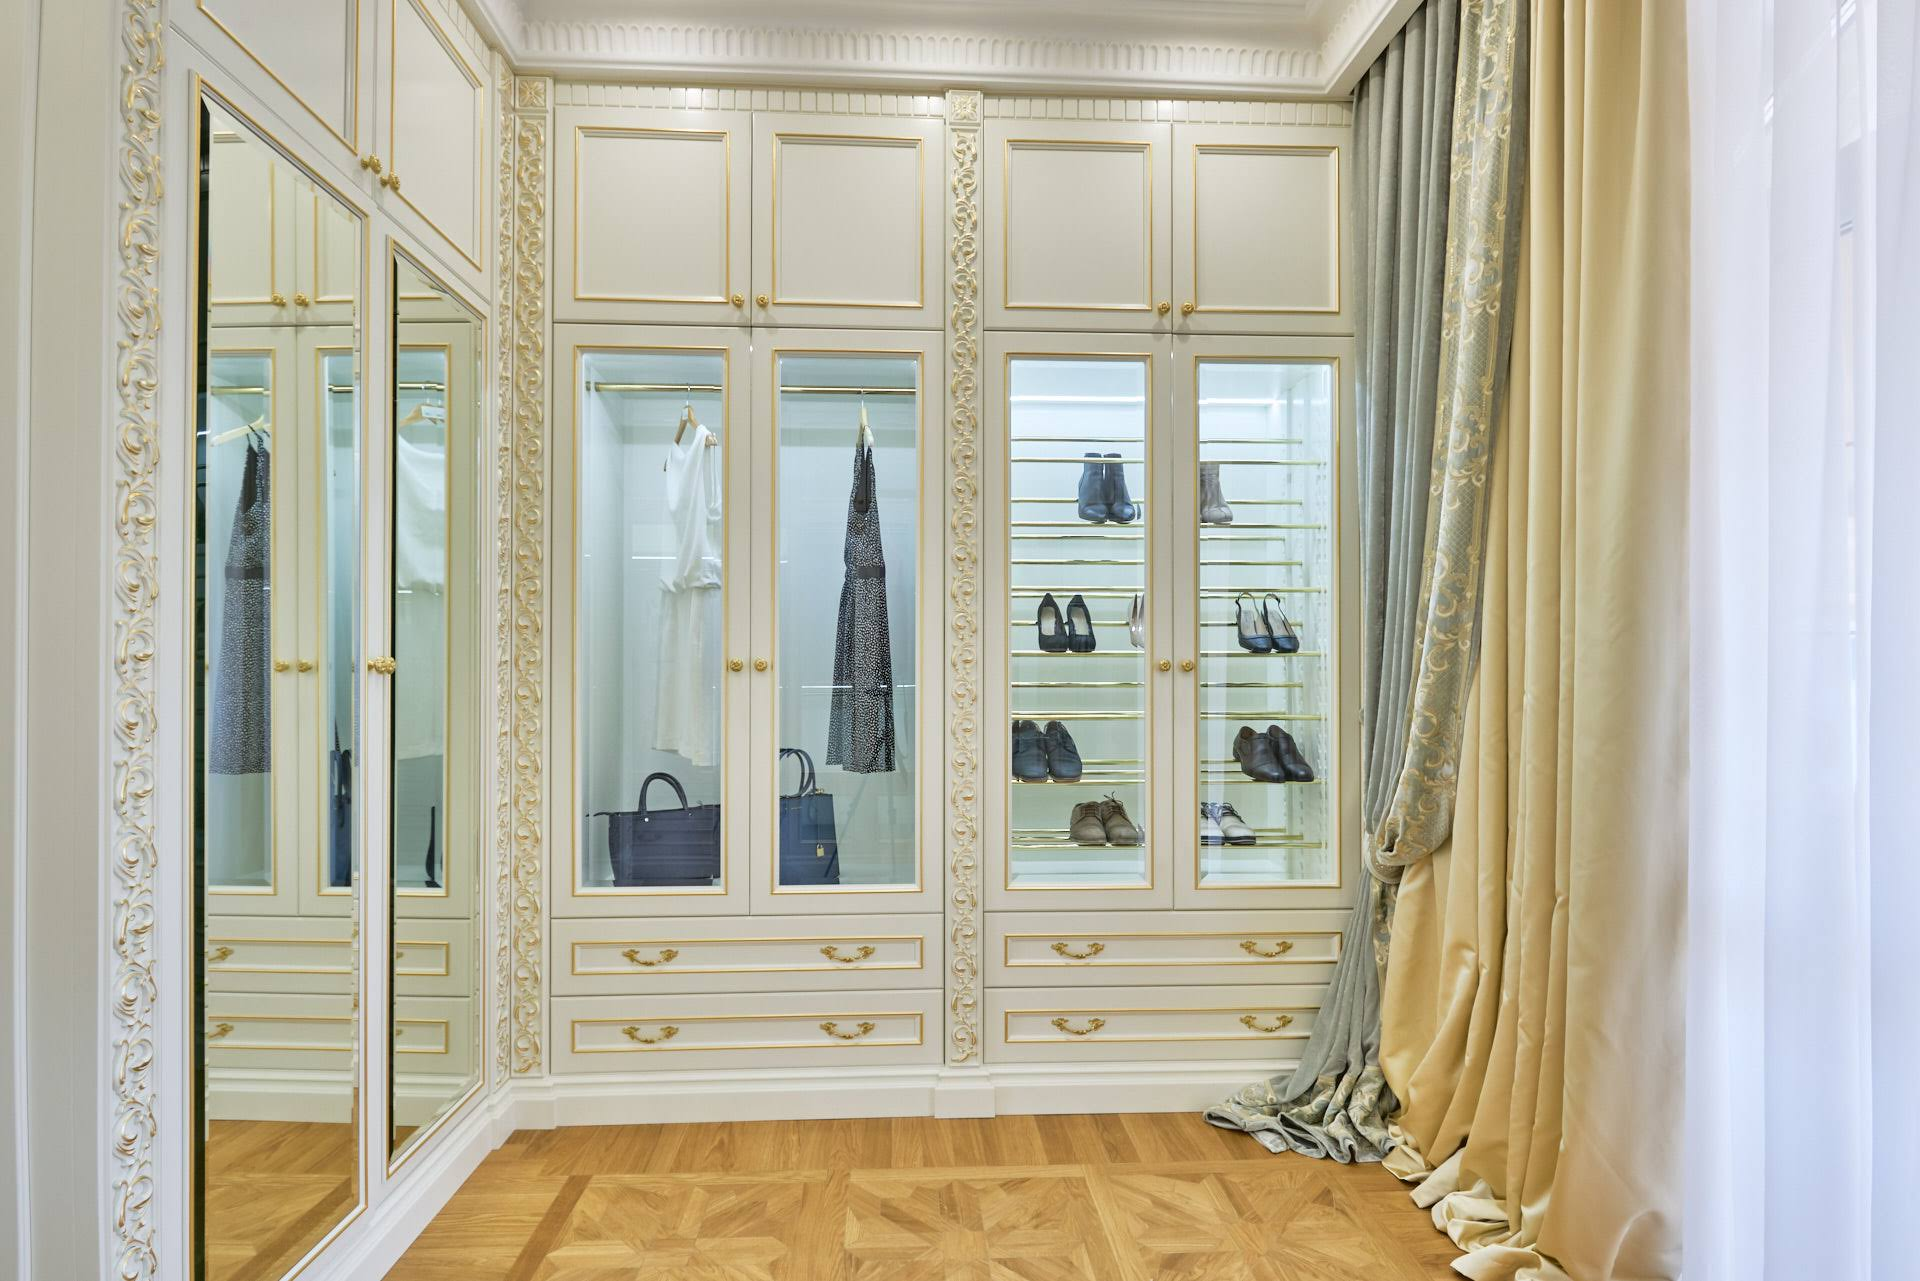 Dressing room in a classic interior